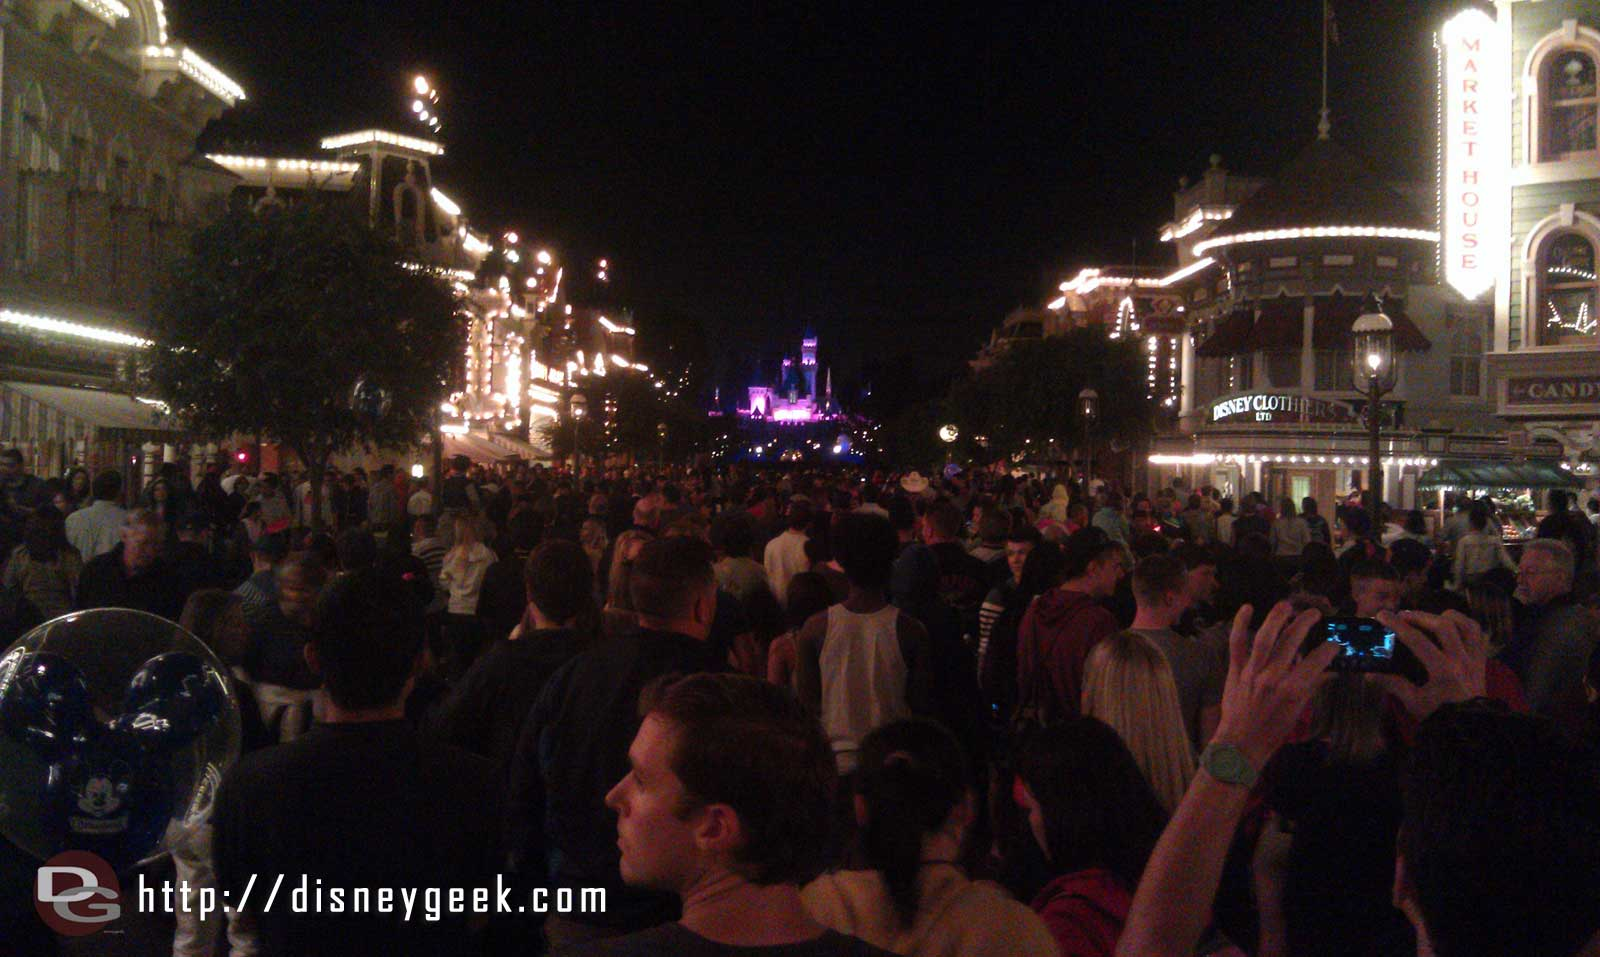 Made it to Main Street for Remember with a minute to spare